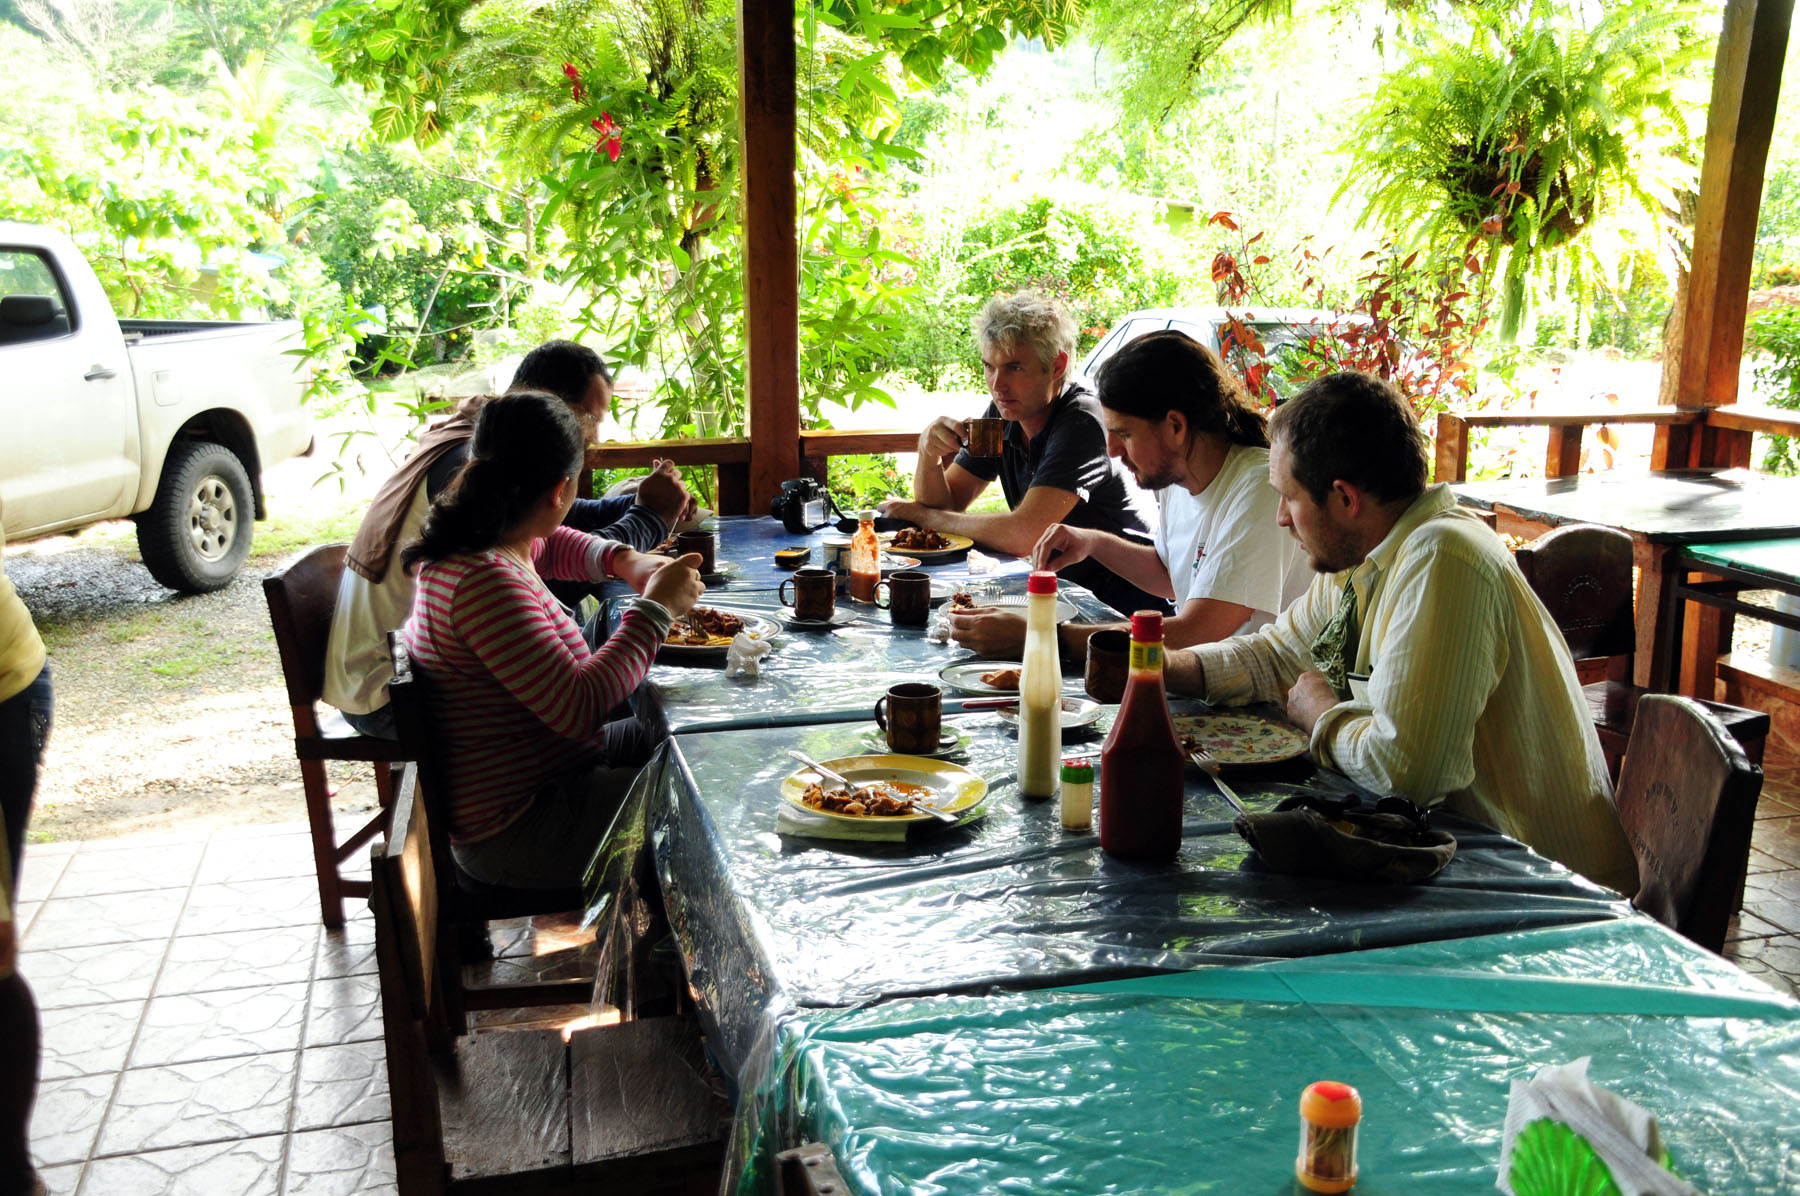 Smithsonian researchers eat a meal in preparation for a fossil excavation<div class='credit'><strong>Credit:</strong> Smithsonian researchers eat a meal in preparation for a fossil excavation</div>